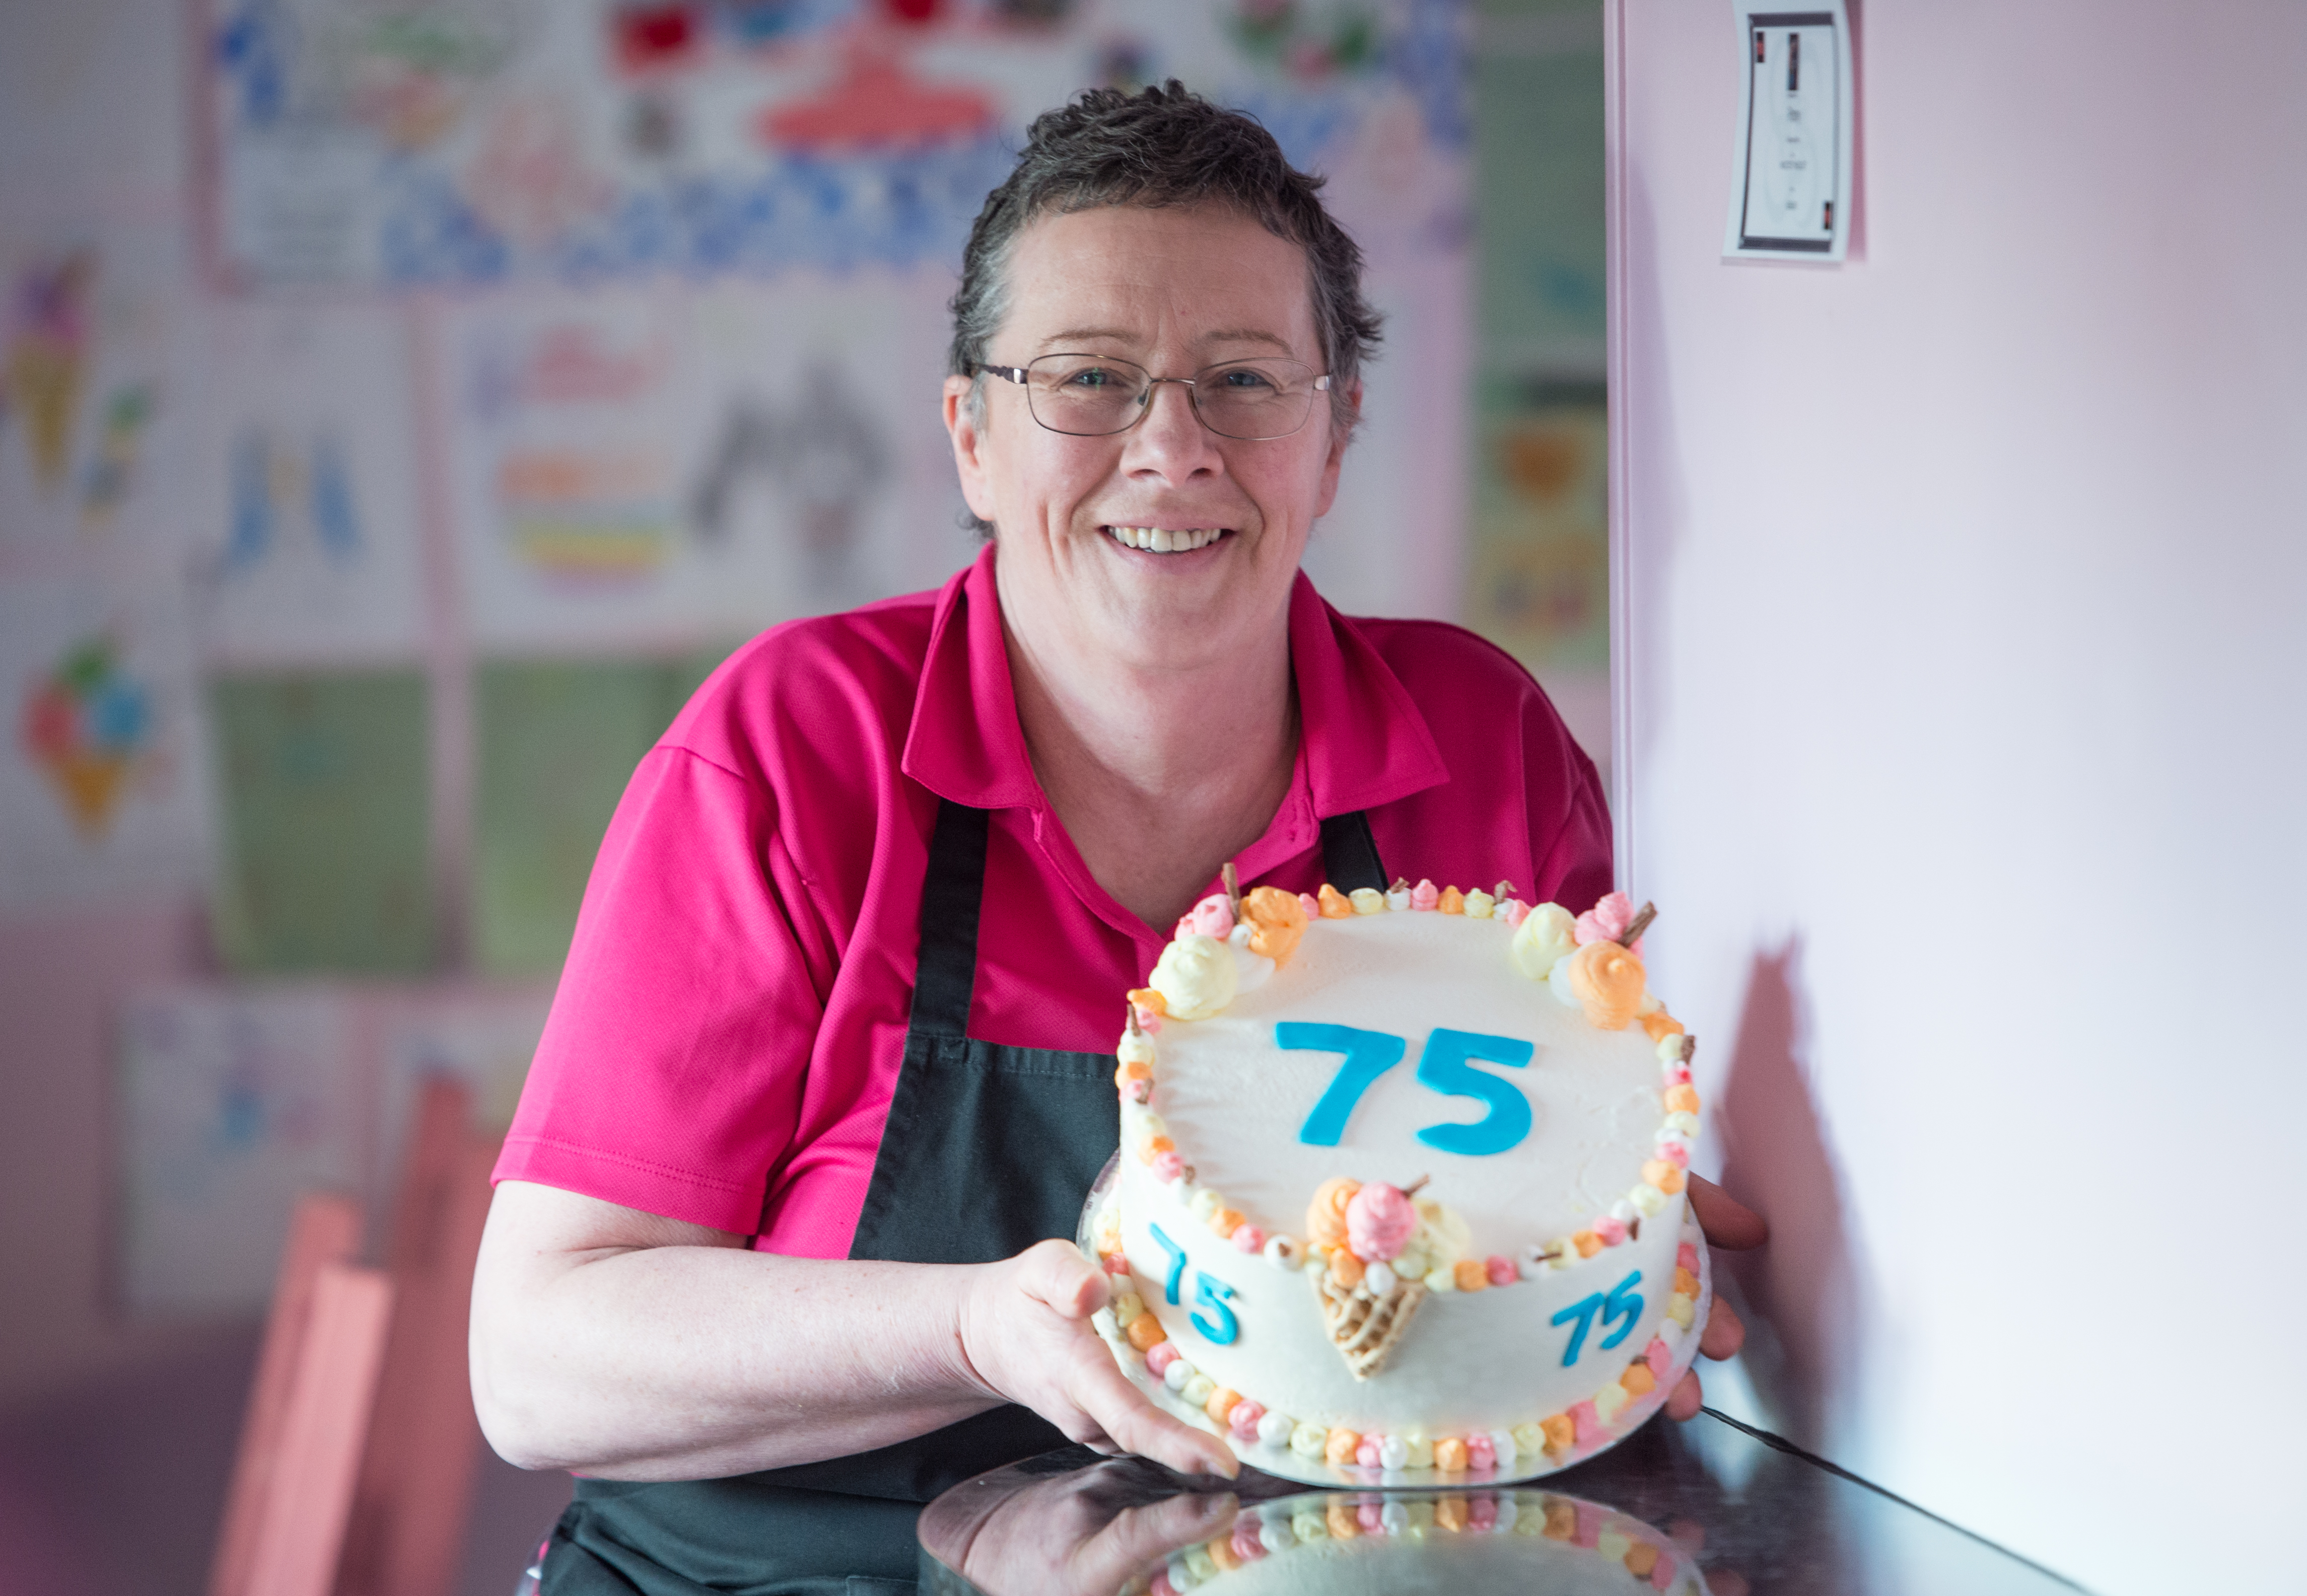 Sheila Gray holding an ice cream cake similar to the won that took a gold award in a National Ice Cream competition.